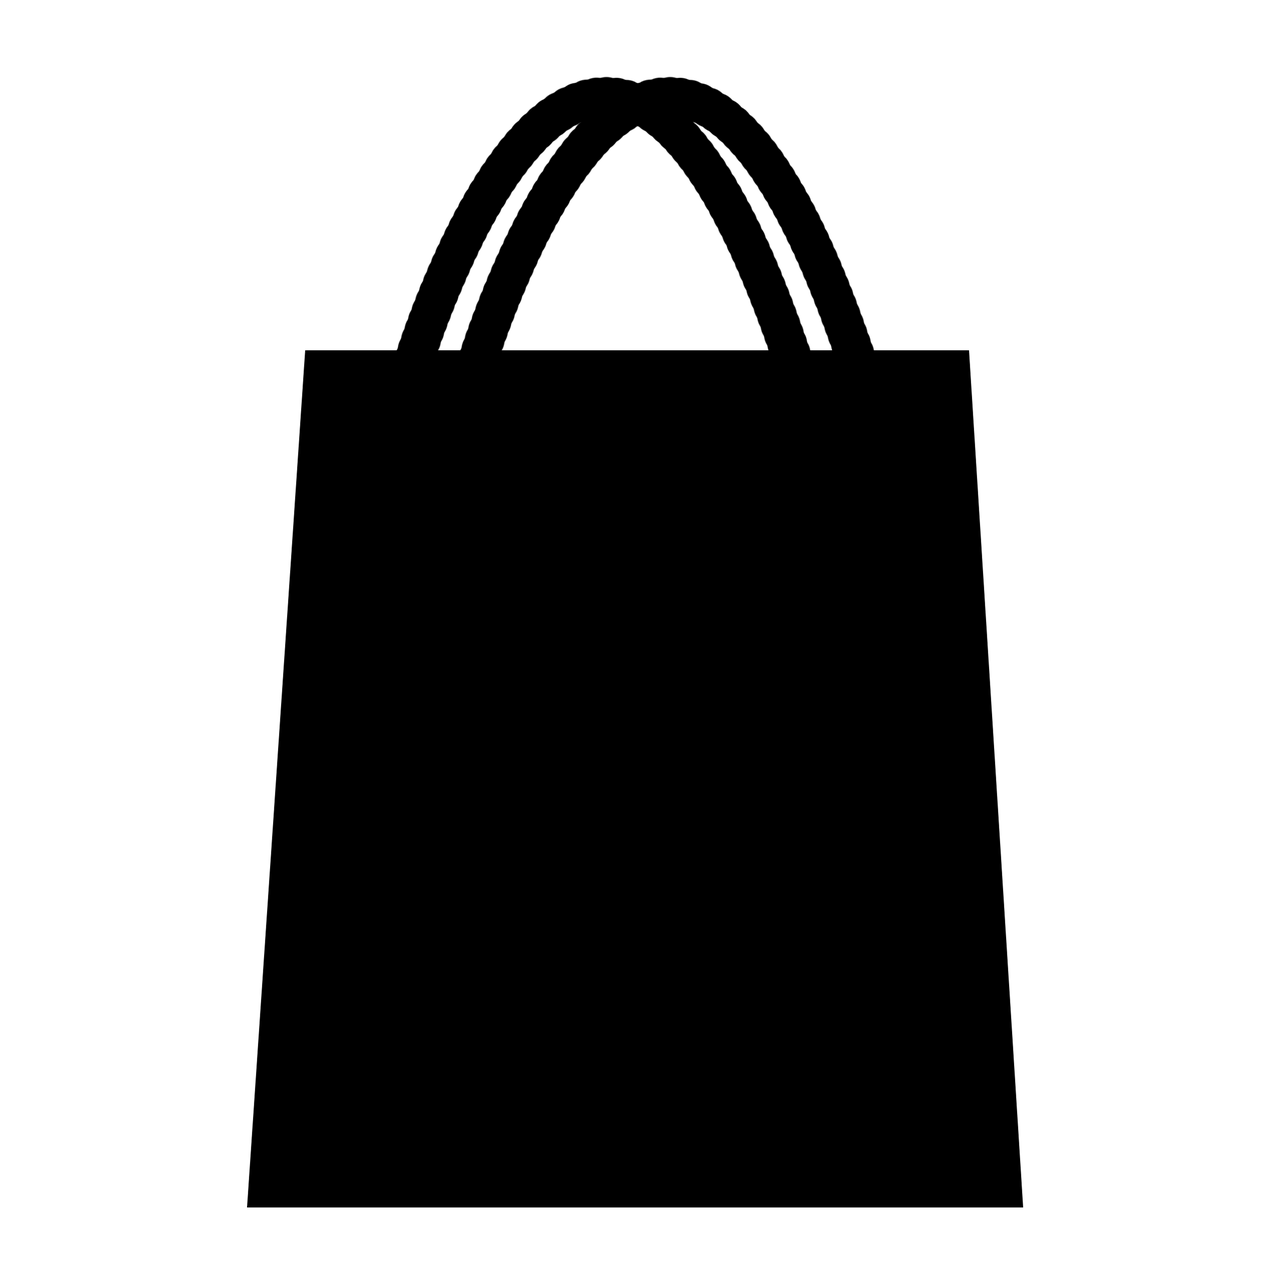 bag shop shopper free photo